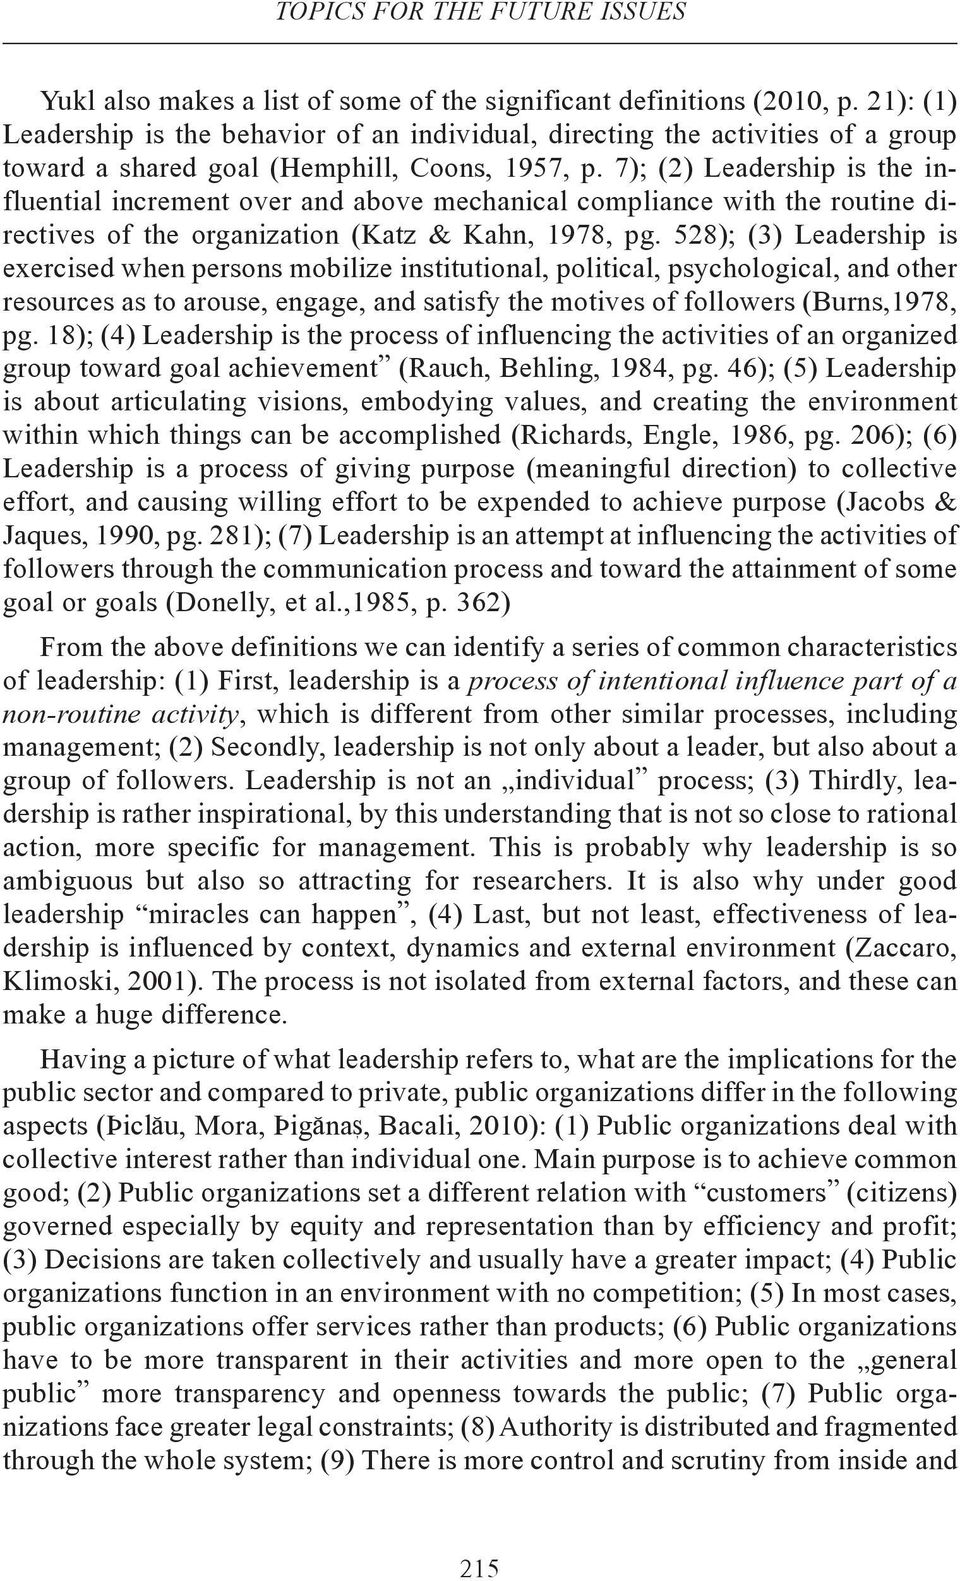 7); (2) Leadership is the influential increment over and above mechanical compliance with the routine directives of the organization (Katz & Kahn, 1978, pg.